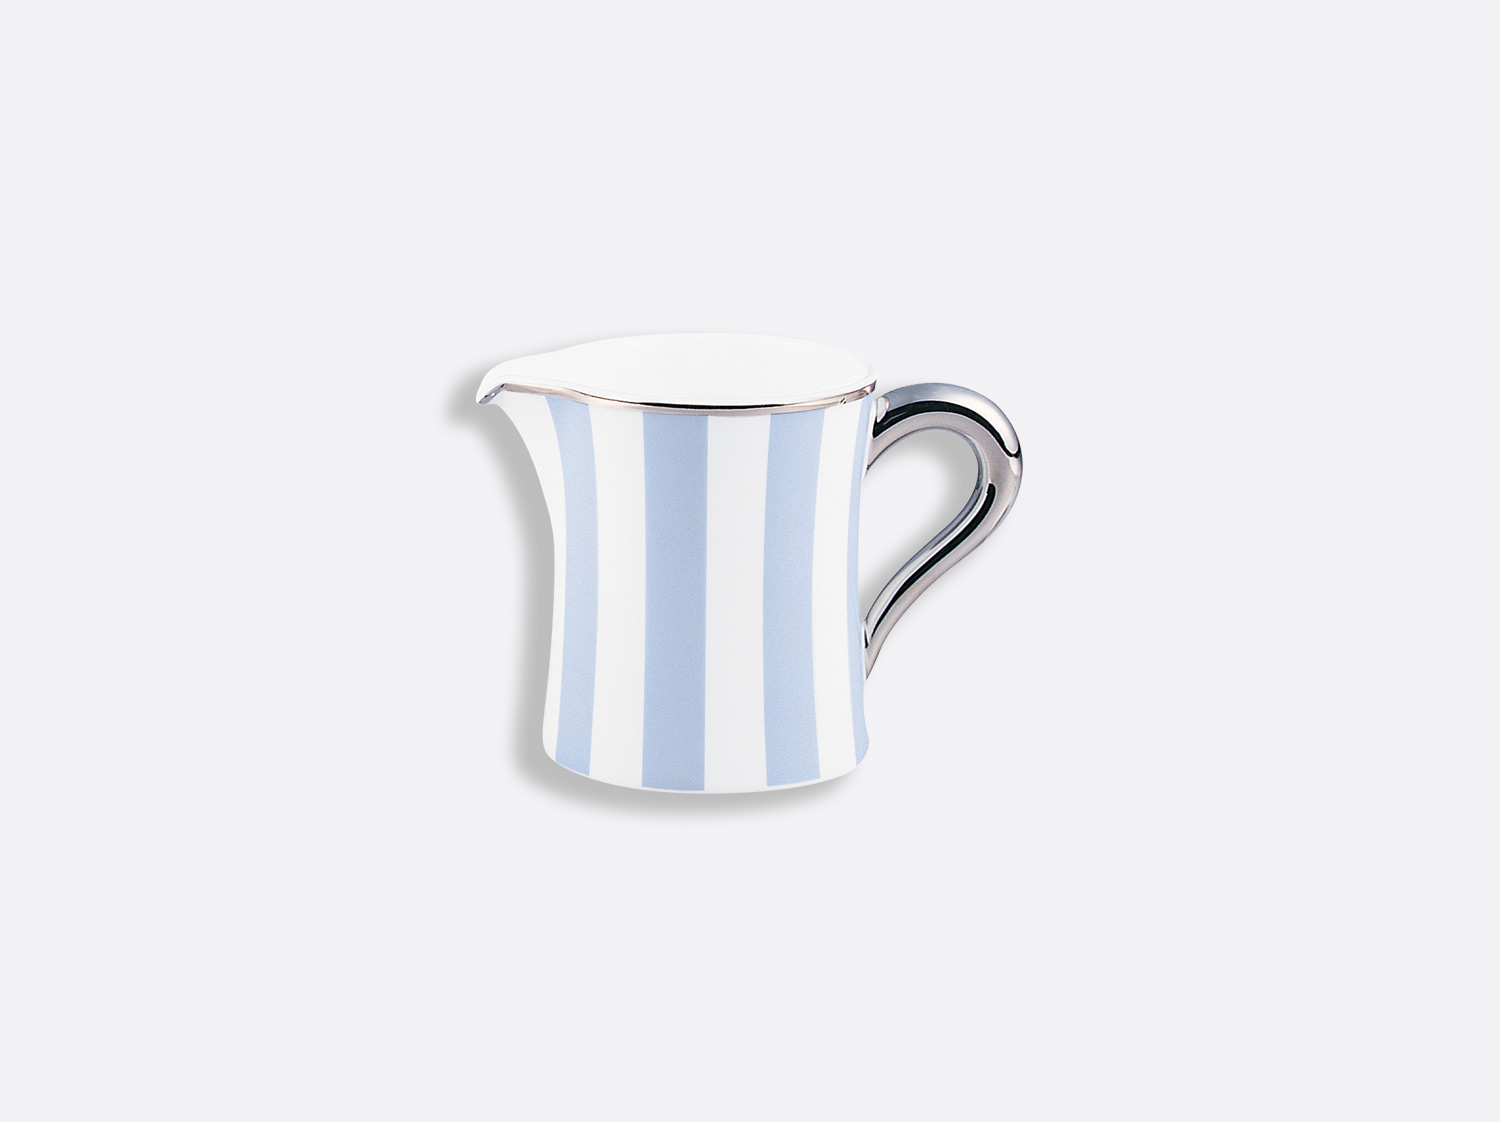 China Creamer 6 cups (galerie shape) 10 cl of the collection Galerie royale blue wallis | Bernardaud